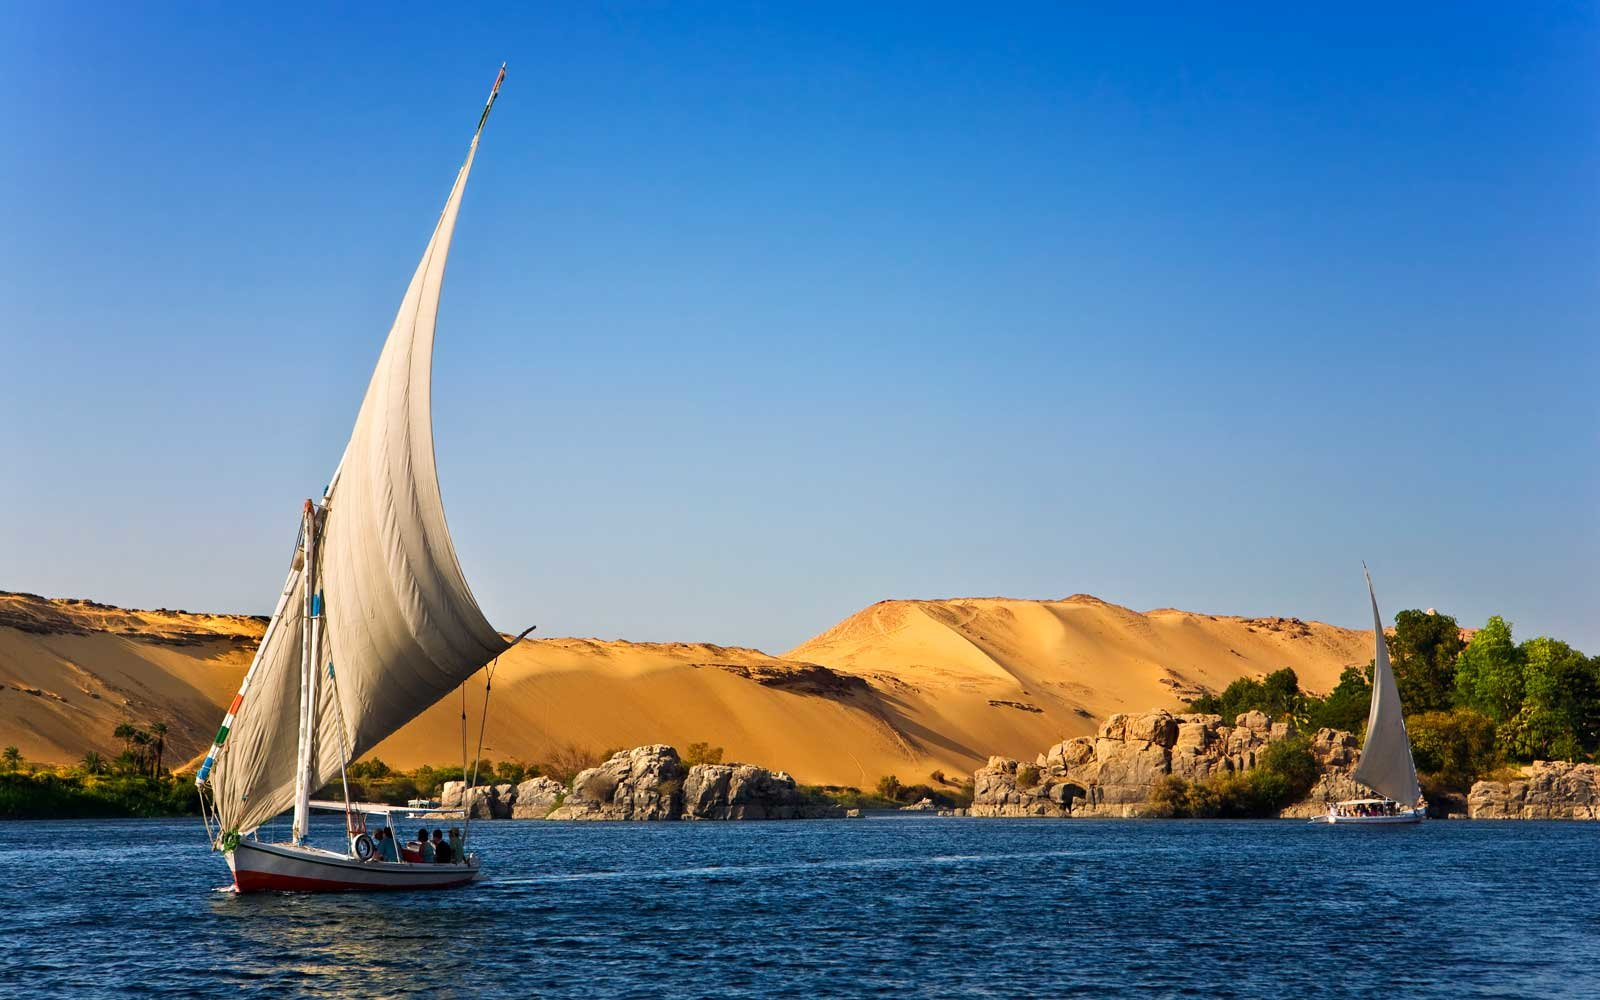 Traditional felucca sailing on the Nile in Egypt